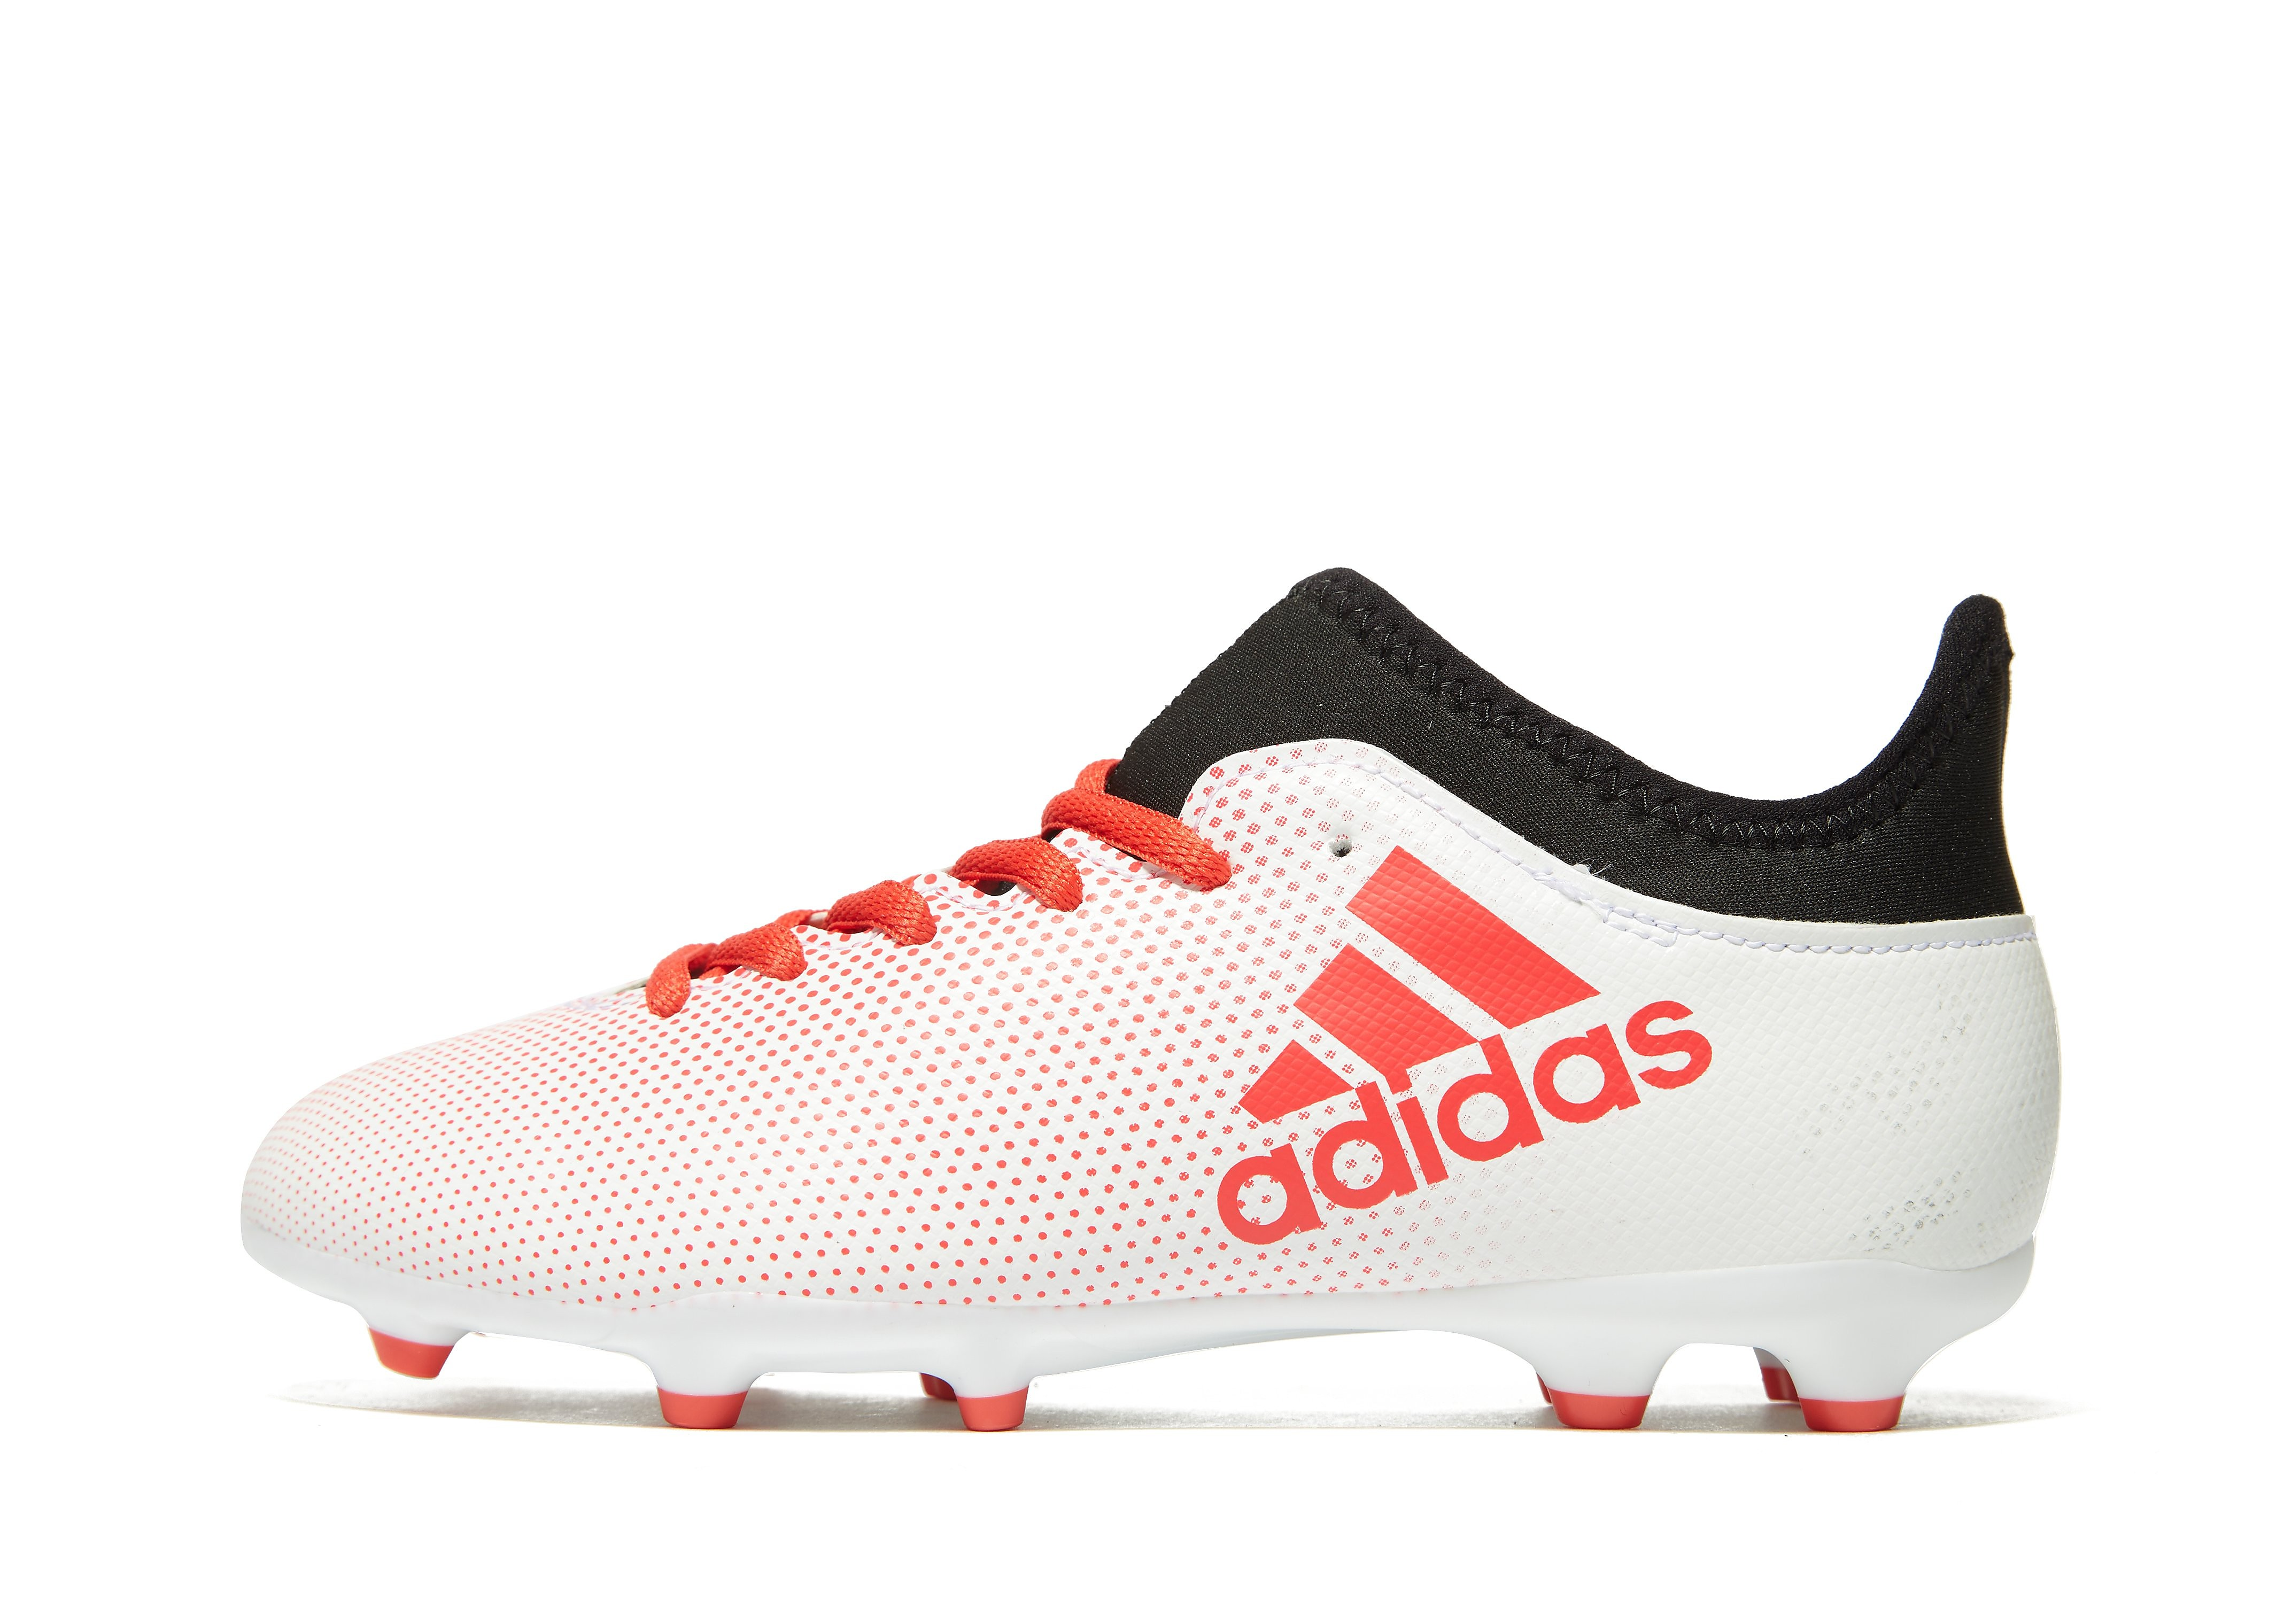 adidas Cold Blooded X 17.3 FG Children